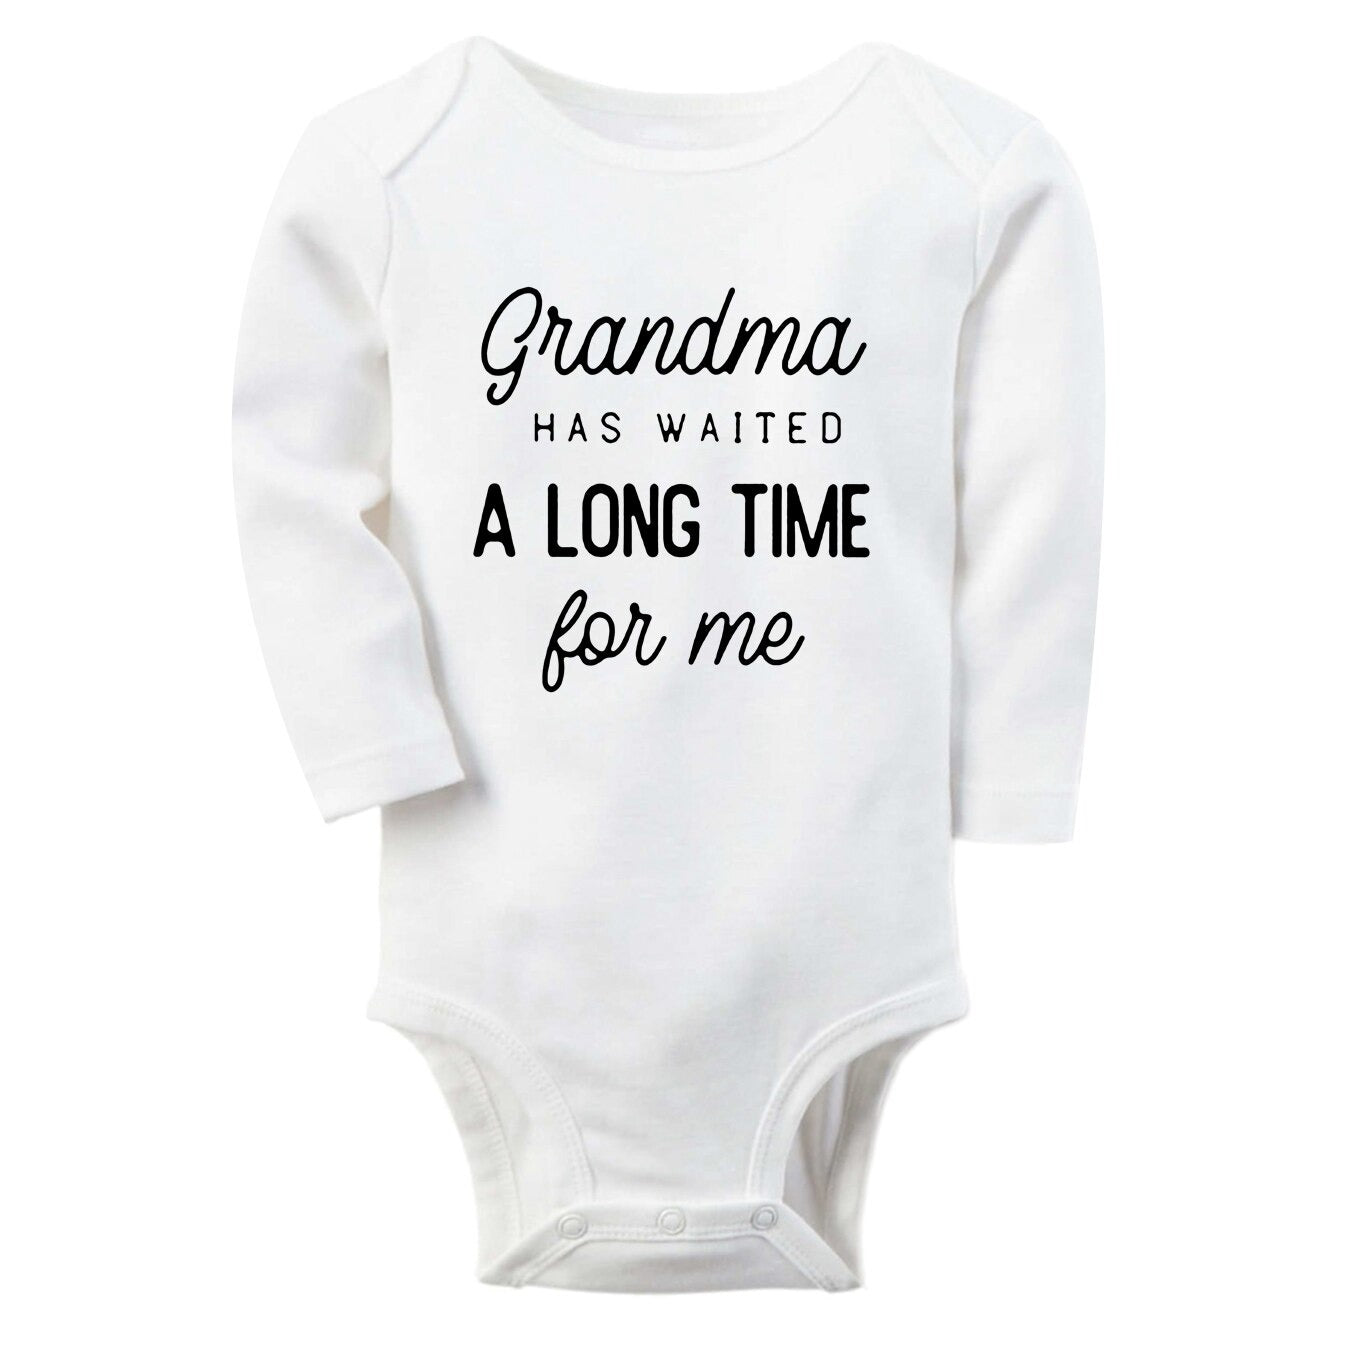 ong-time-letter-printing-new-born-baby-c_description-2